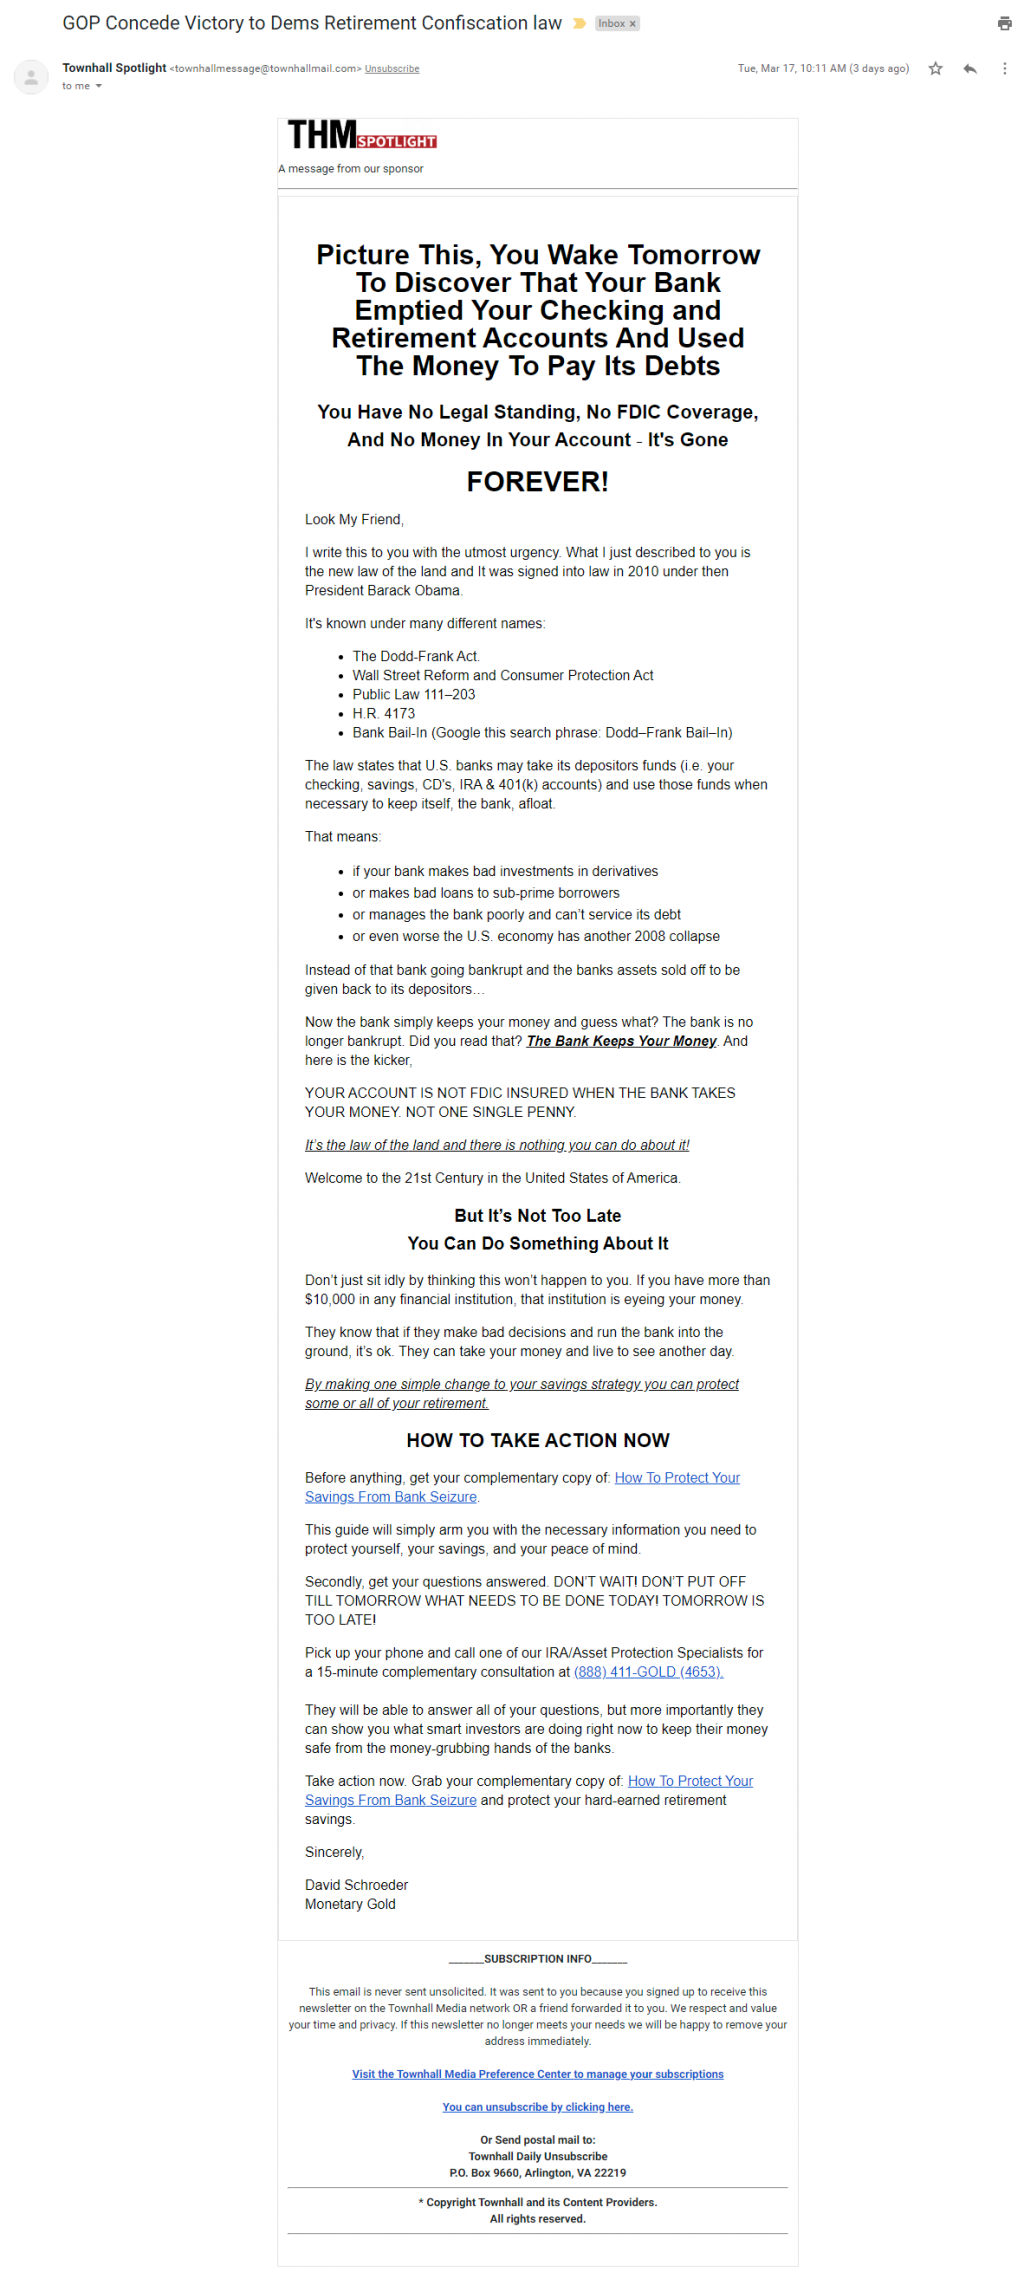 Townhall / Monetary Gold email